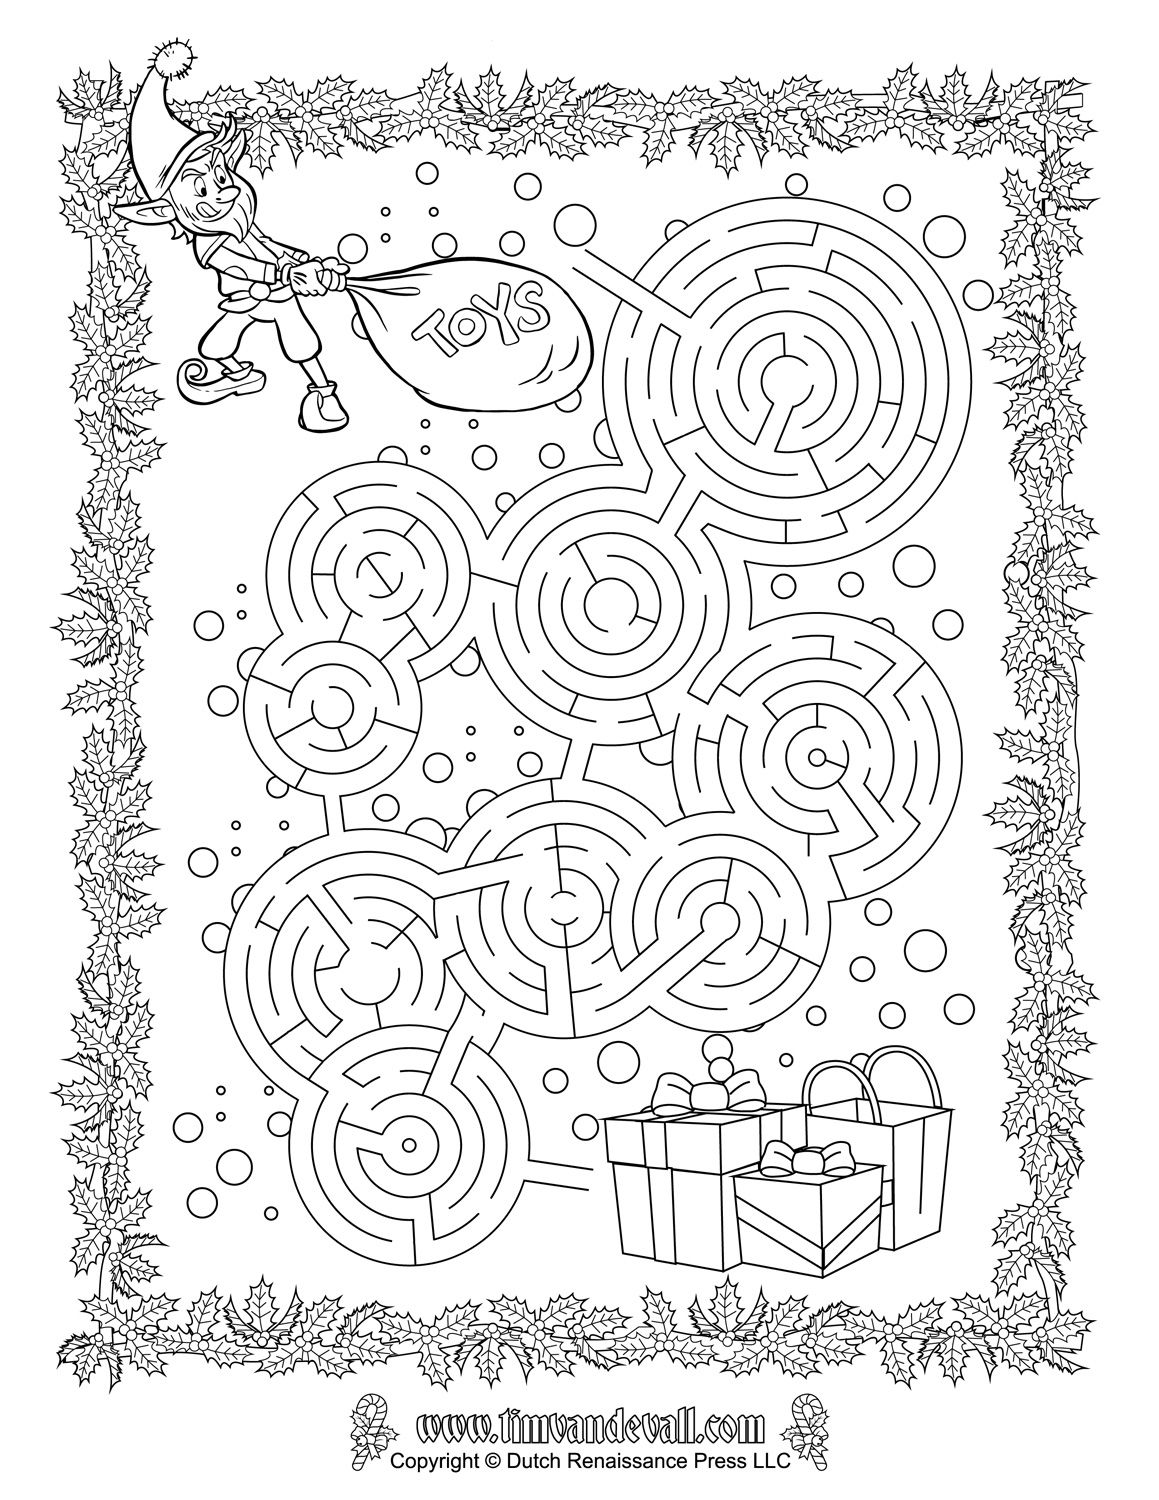 Pin by Davia Houston on winter classroom | Christmas maze, Christmas ...